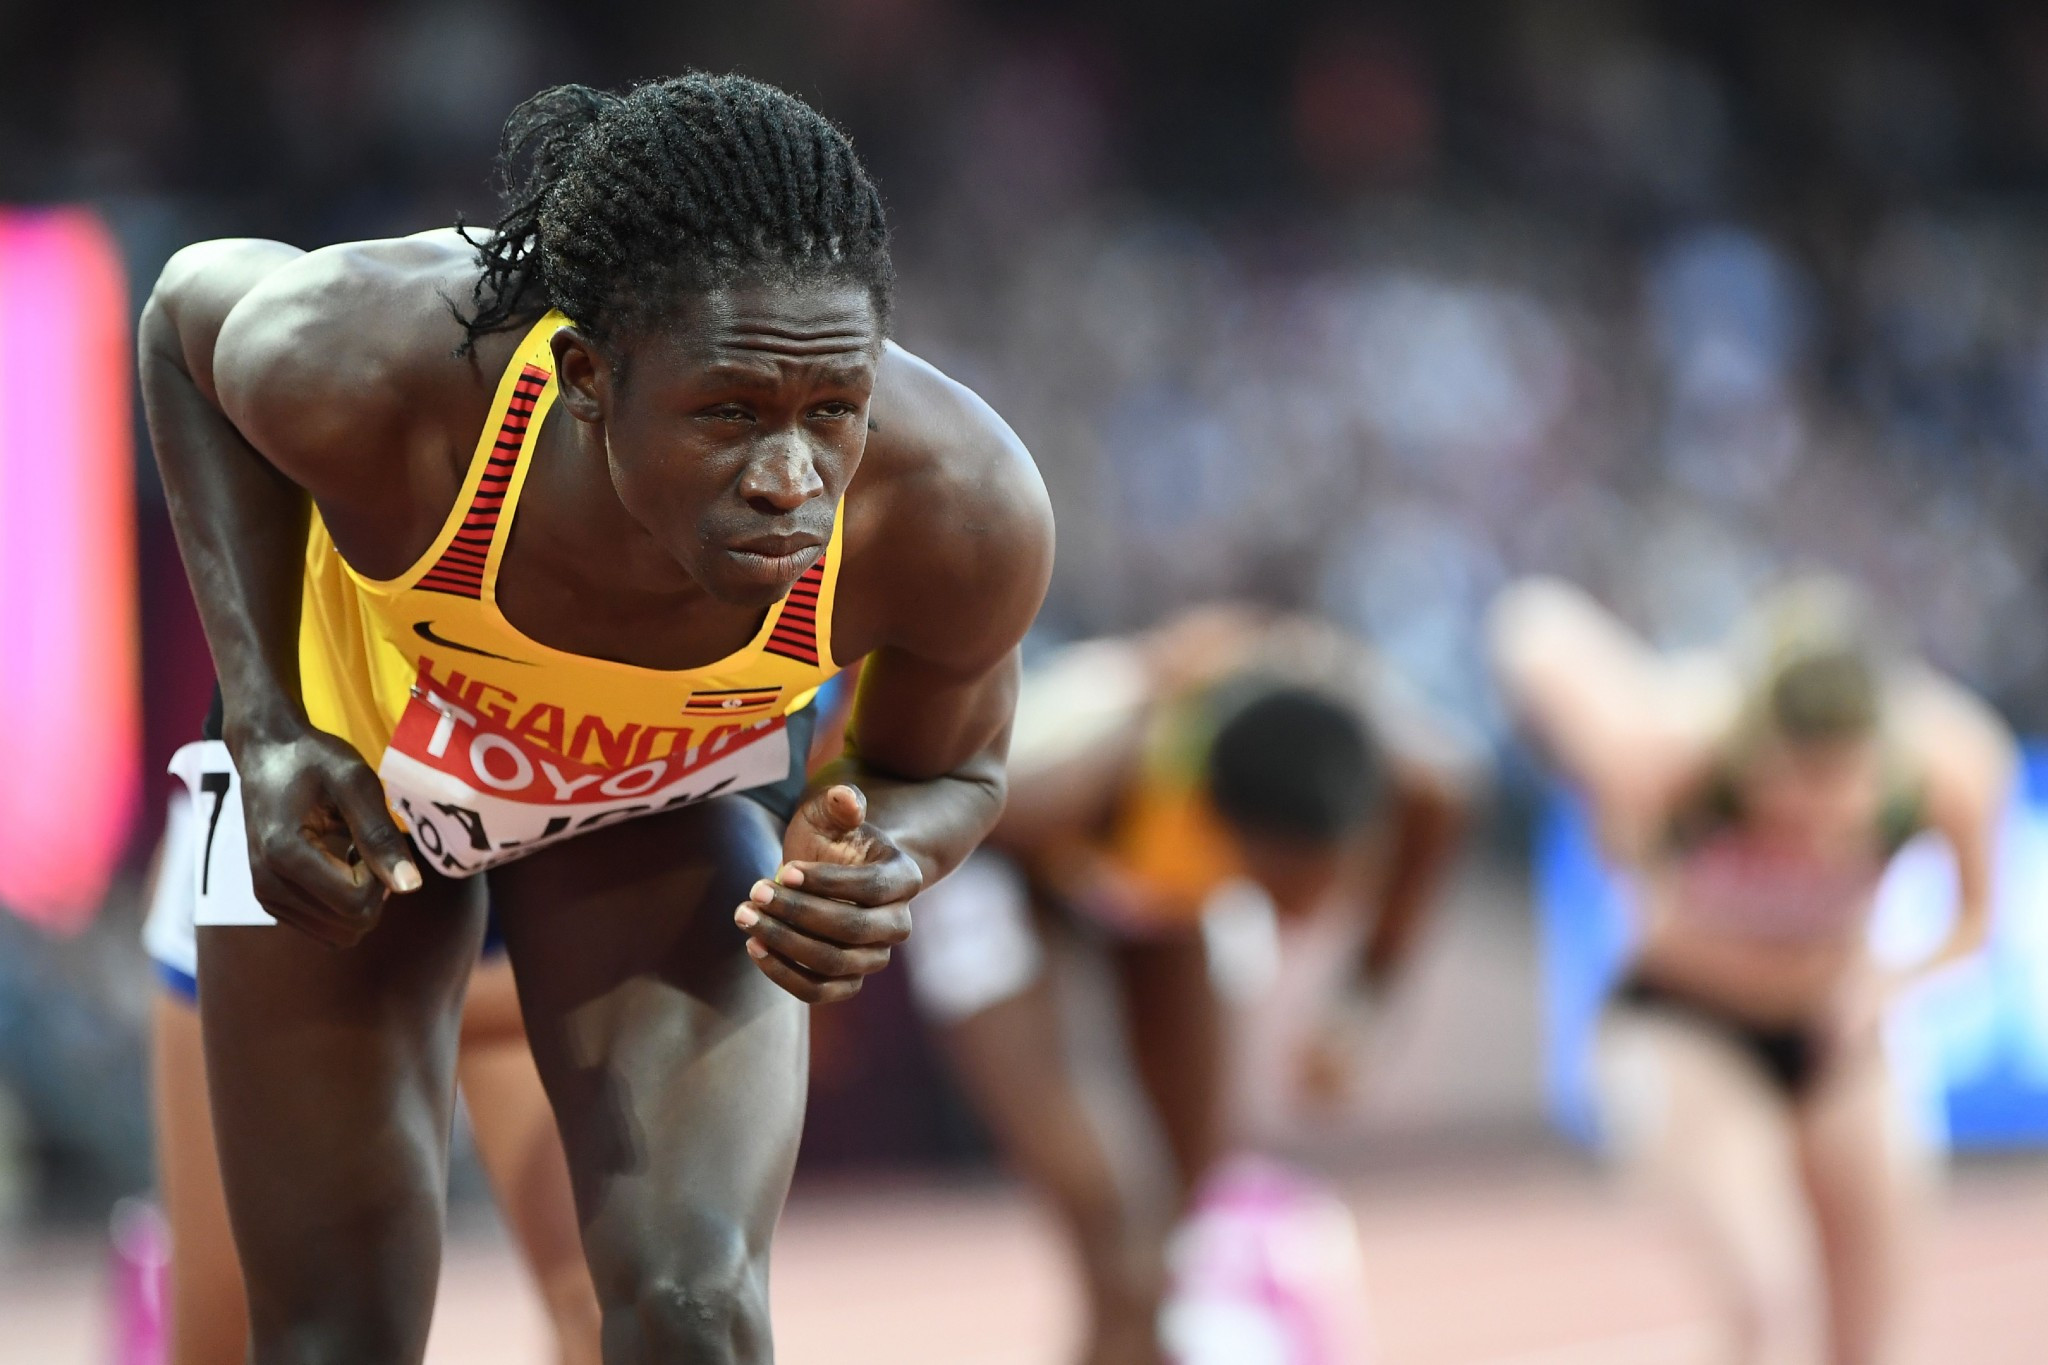 Uganda to compete at Taipei 2017 despite Government's One China policy